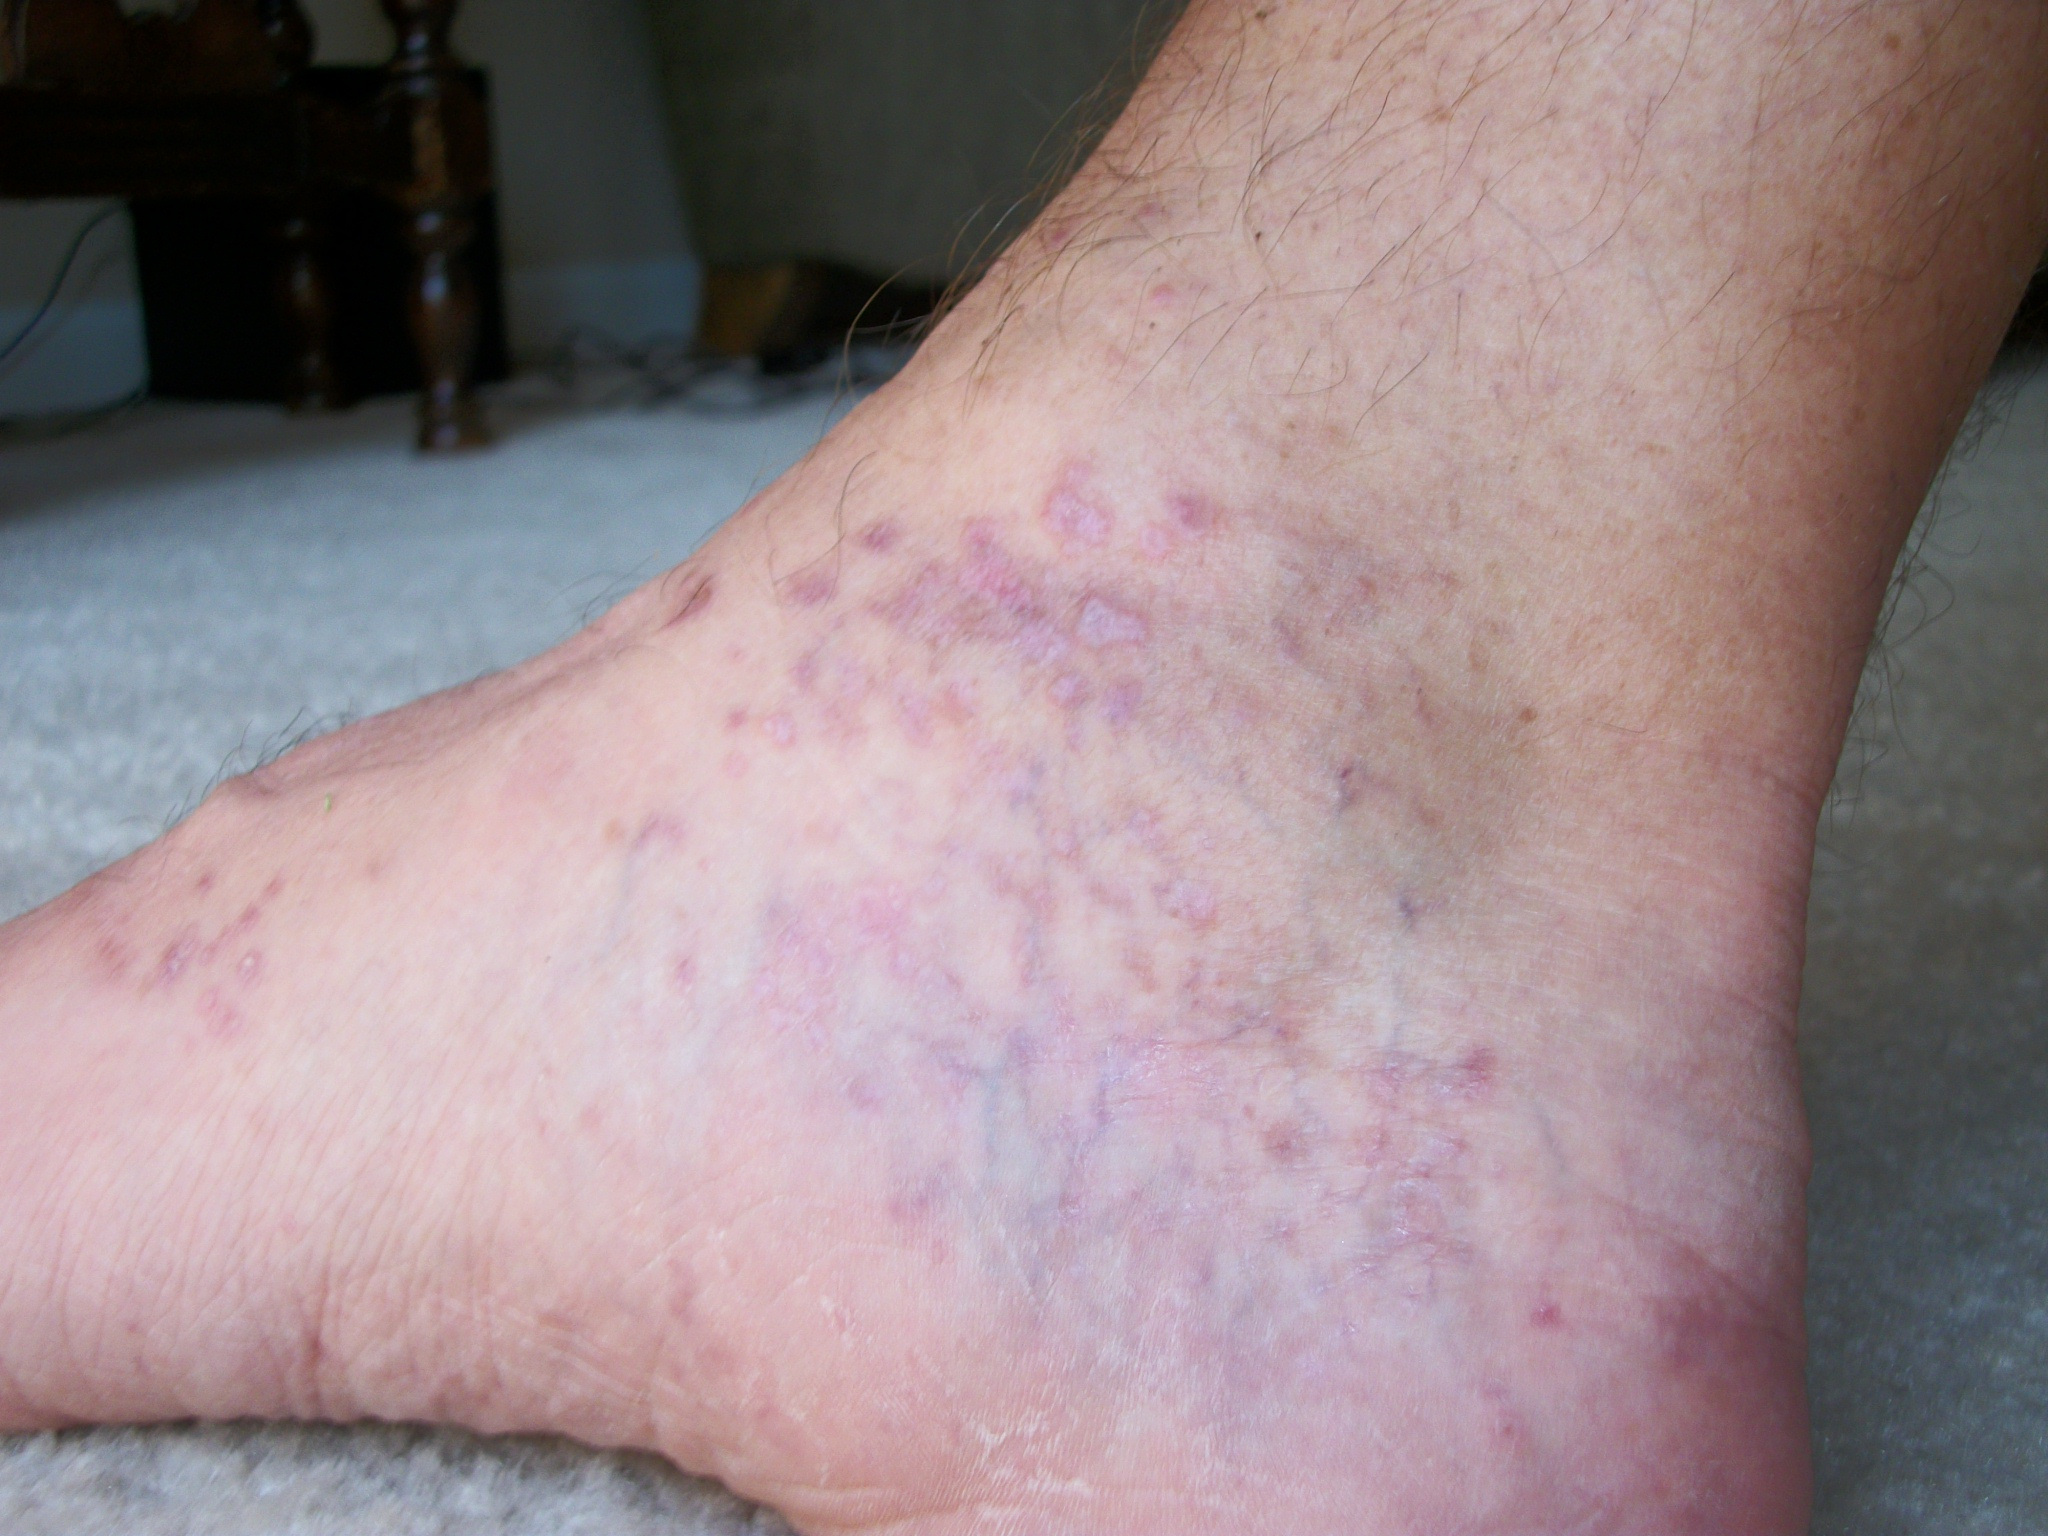 What causes a rash on top of the foot? | Reference.com